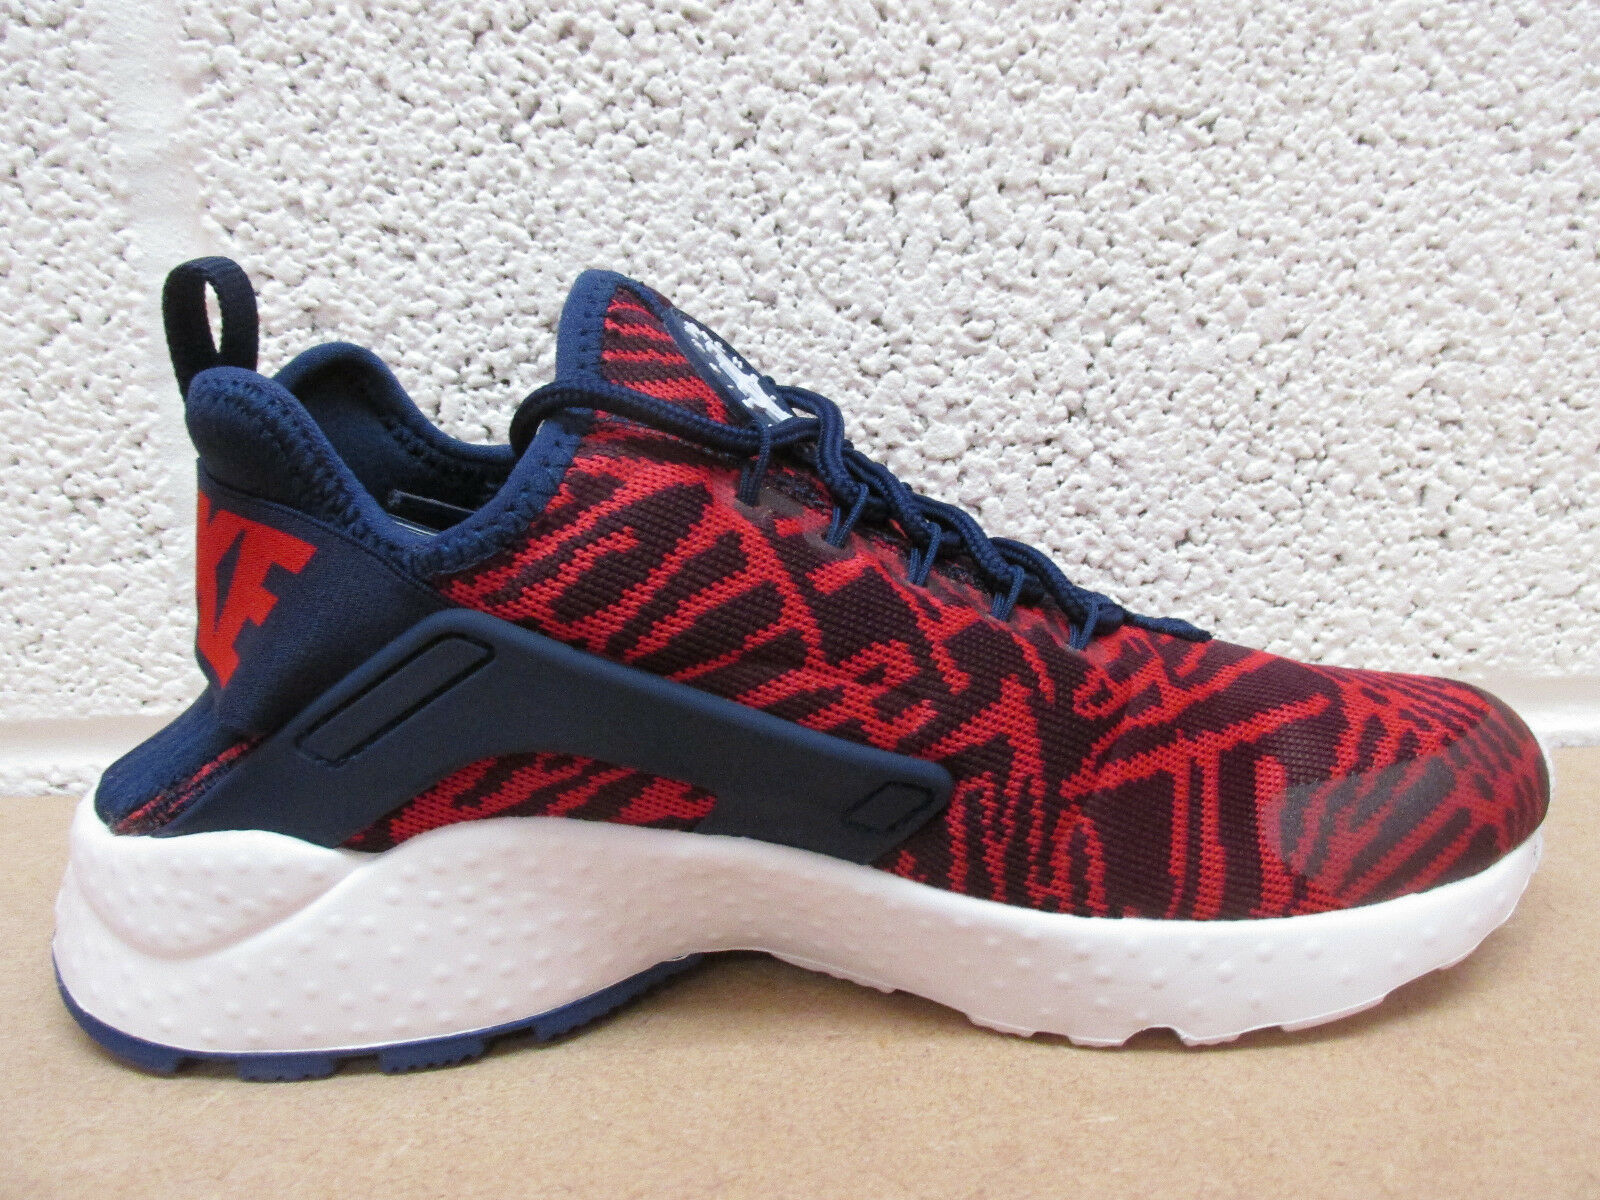 7012febd082e0 Nike Womens WMNS Air Huarache Run Ultra KJCRD Loyal Blue university Red 8  US for sale online